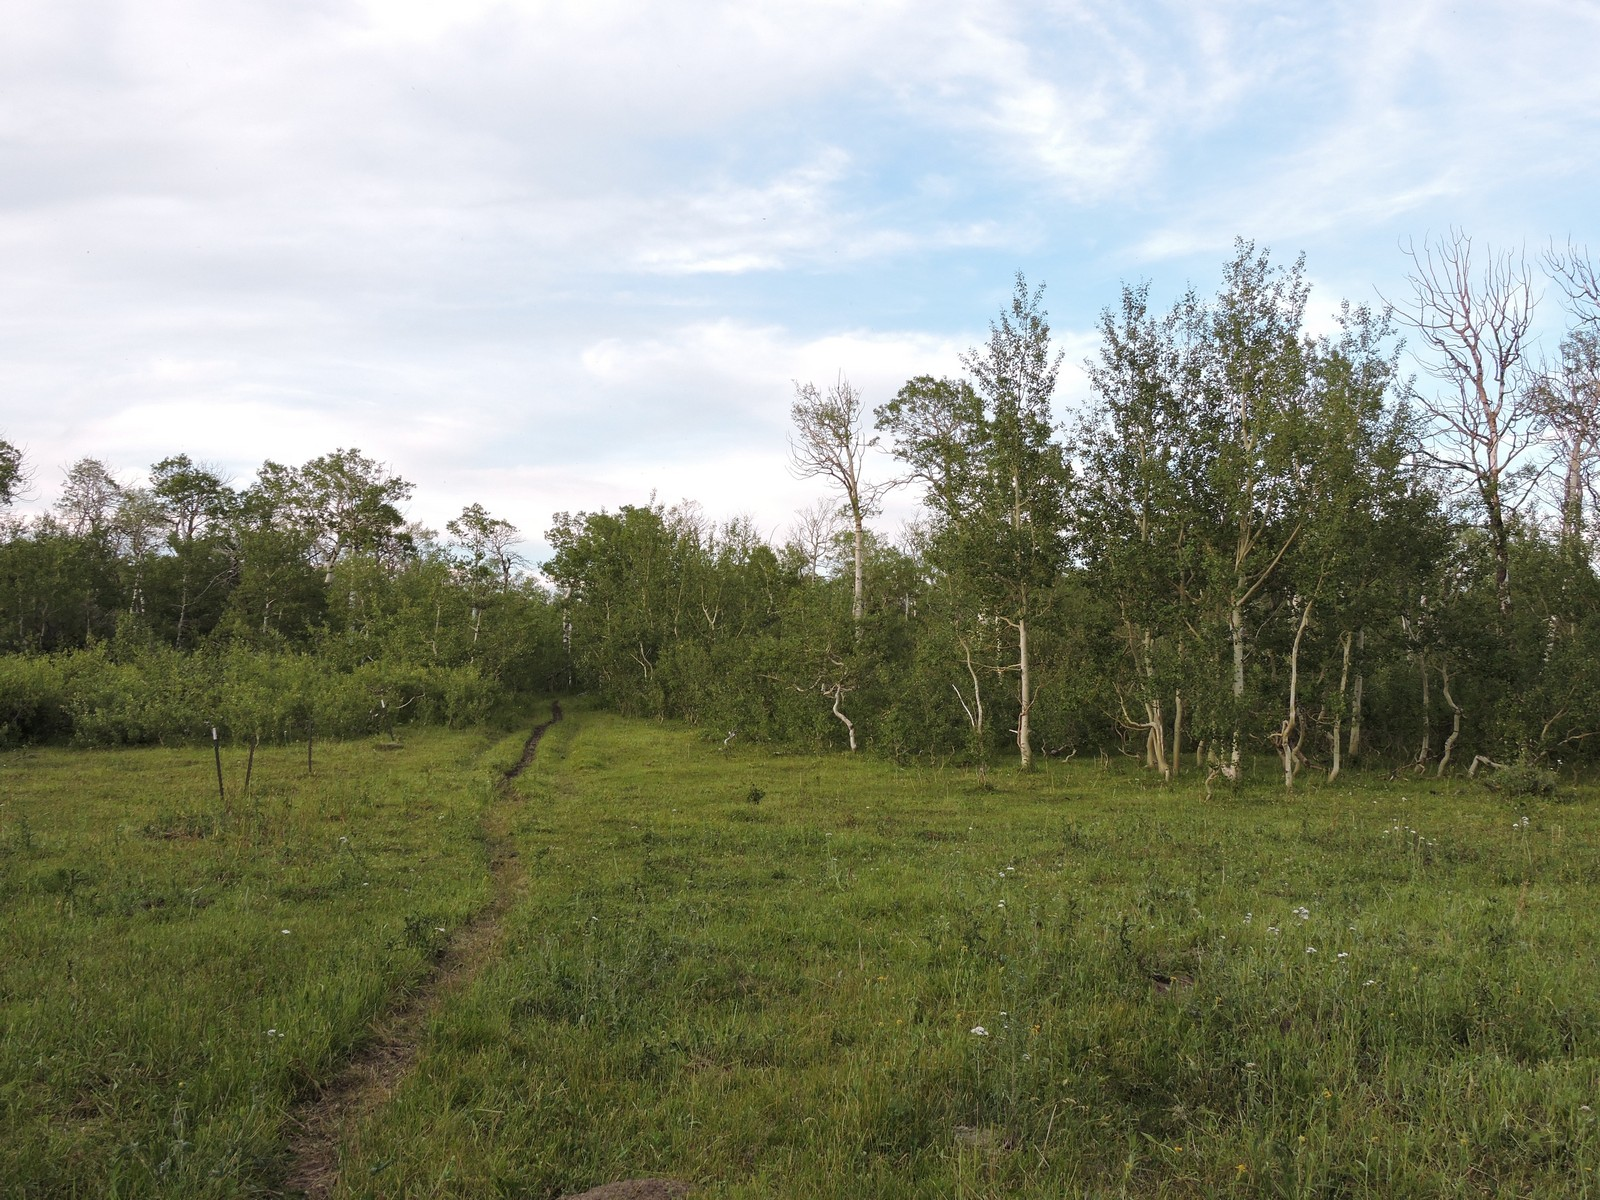 Additional photo for property listing at 80 N Shore Duck Lake Rd , Babb, MT 59411  Other Areas, Montana 59411 United States